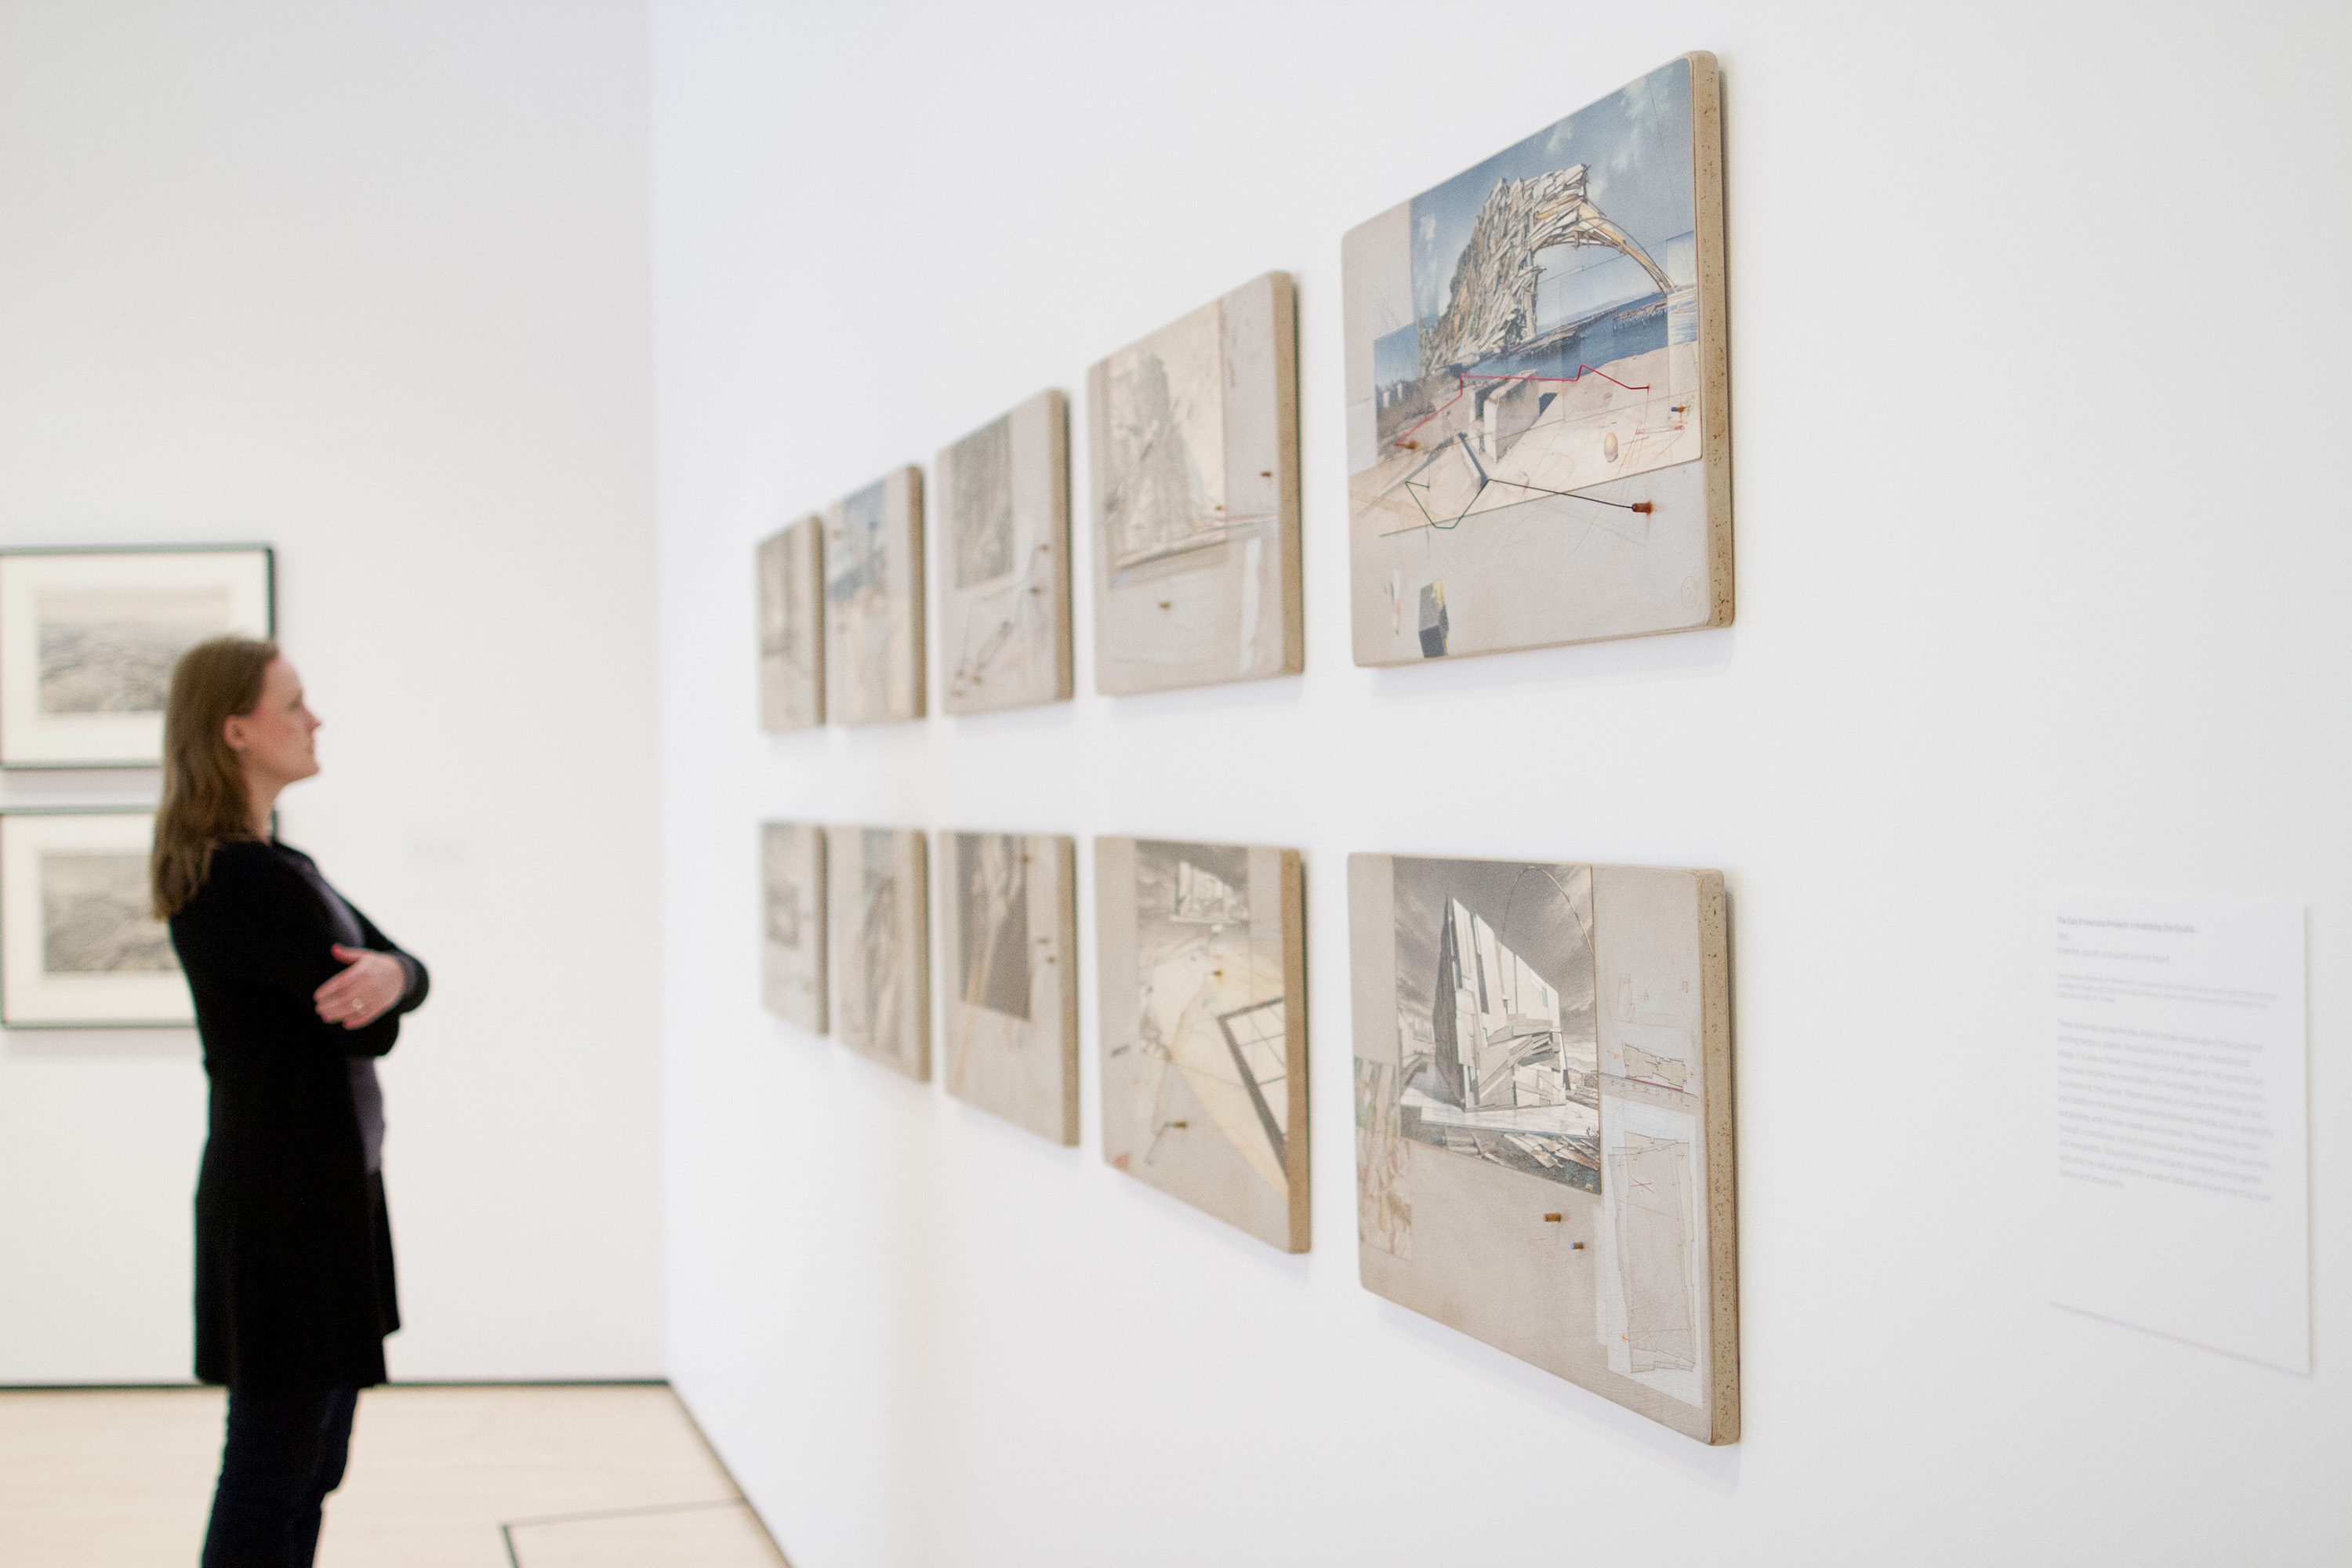 <i>Lebbeus Woods: Architect</i>, installation view at the Eli and Edythe Broad Art Museum at Michigan State University, 2013. Photo: Eat Pomegranate Photography